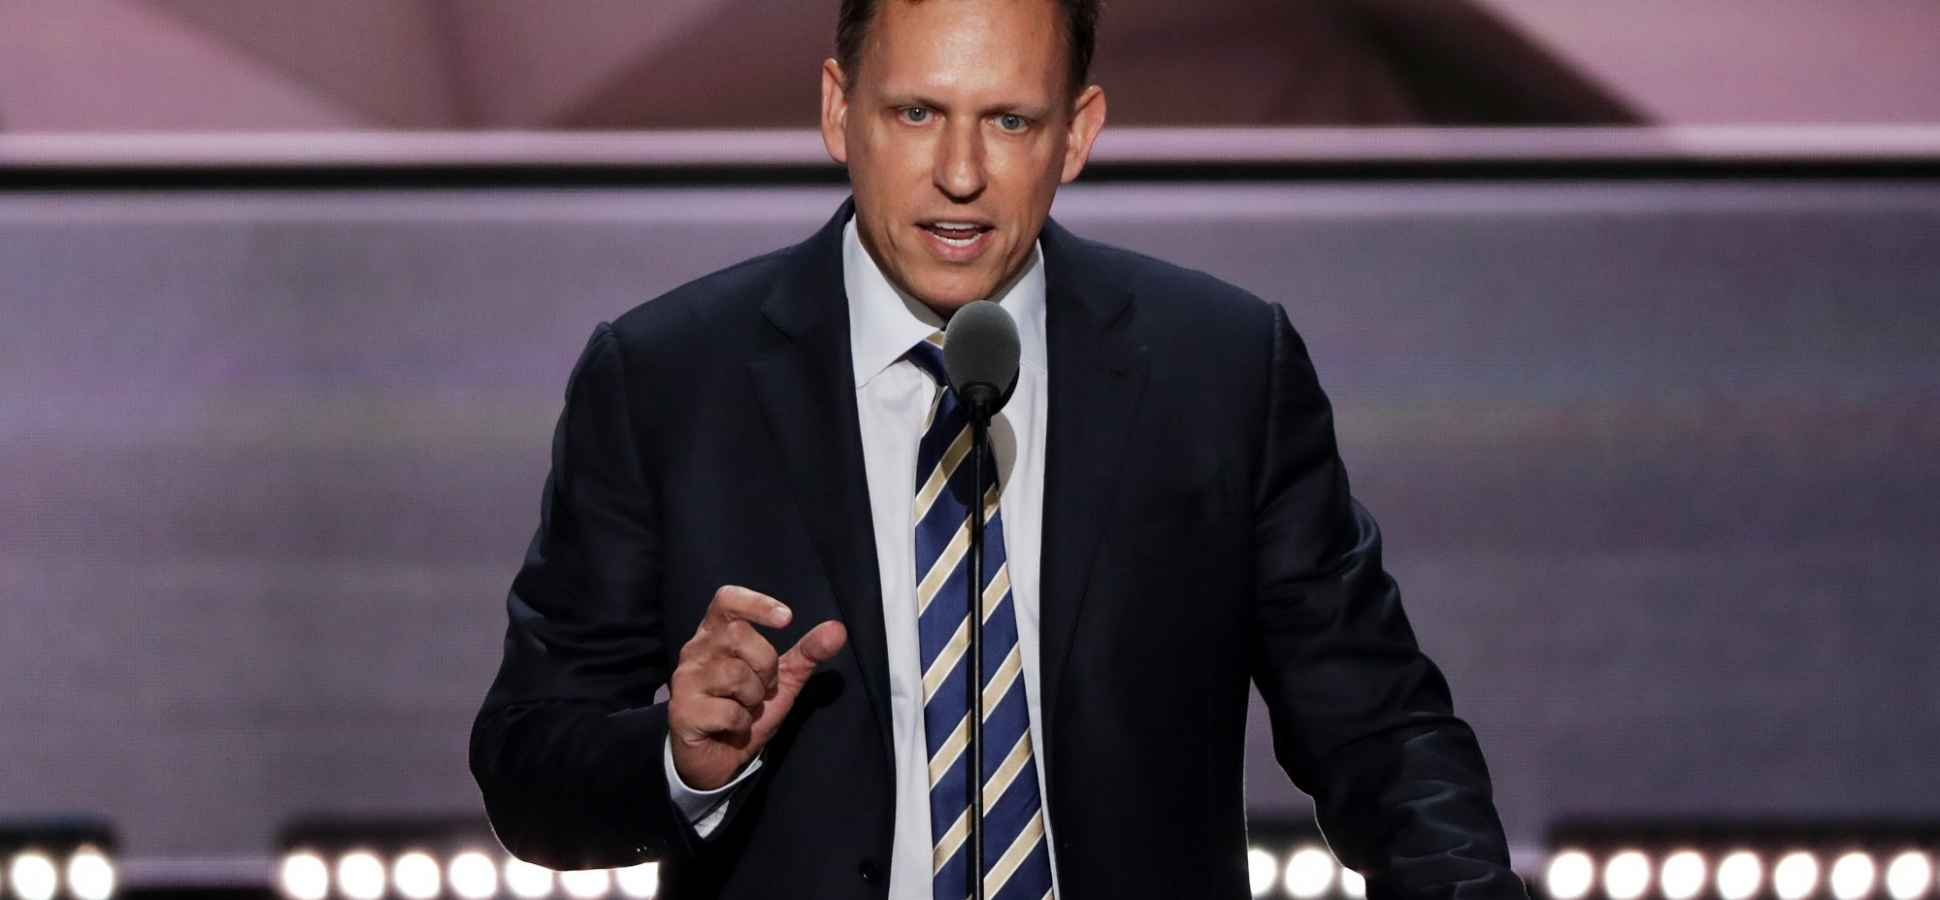 Silicon Valley Is Furious About Peter Thiel's $1.25 Million Donation to Trump's Campaign